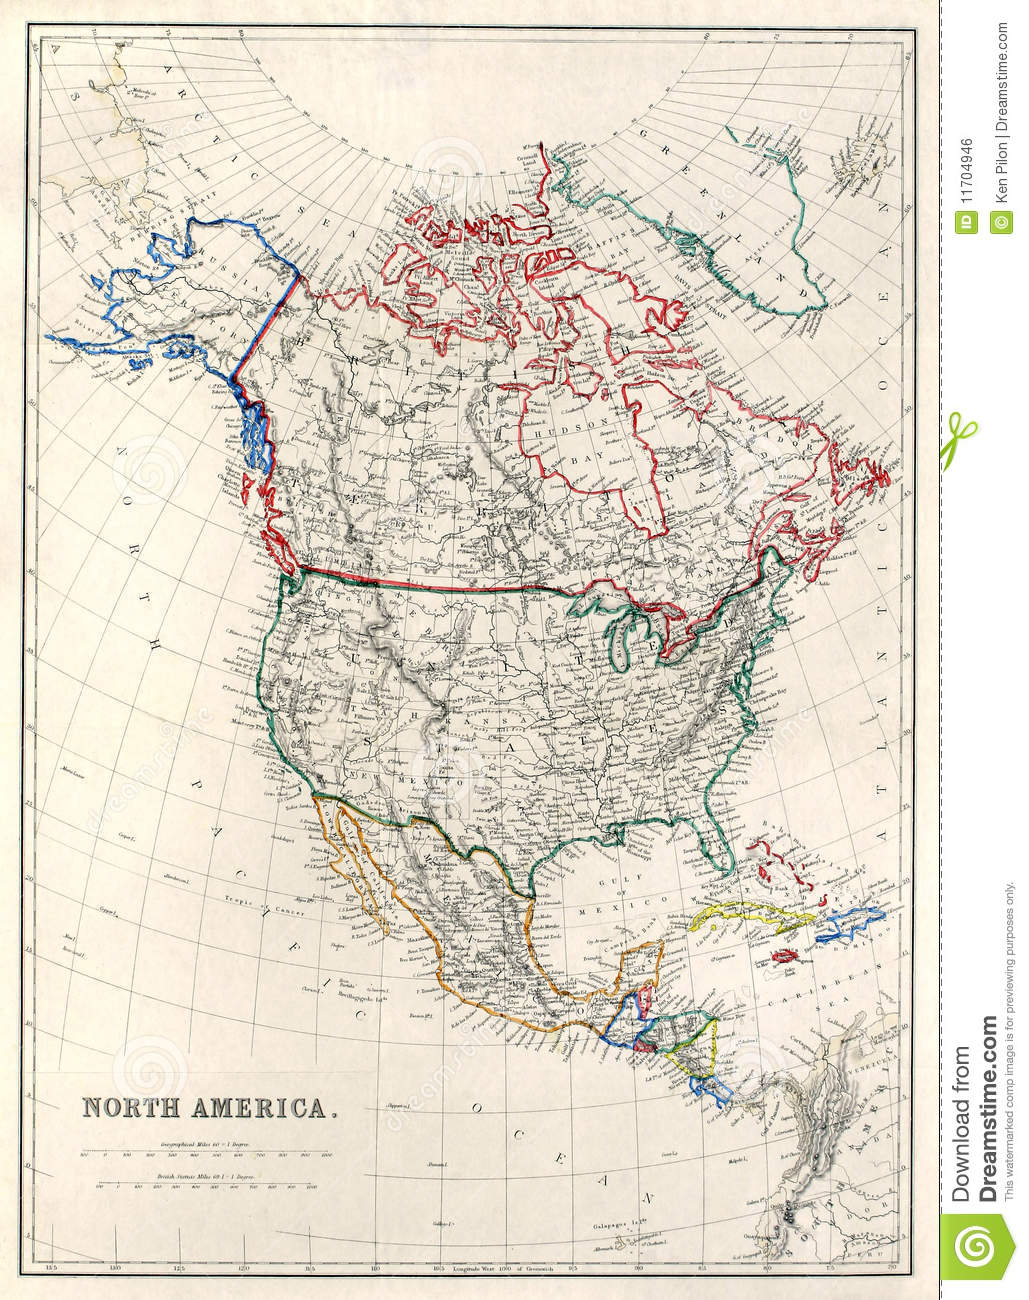 Th Century Map Of North America Royalty Free Stock Image Image - Map of n america